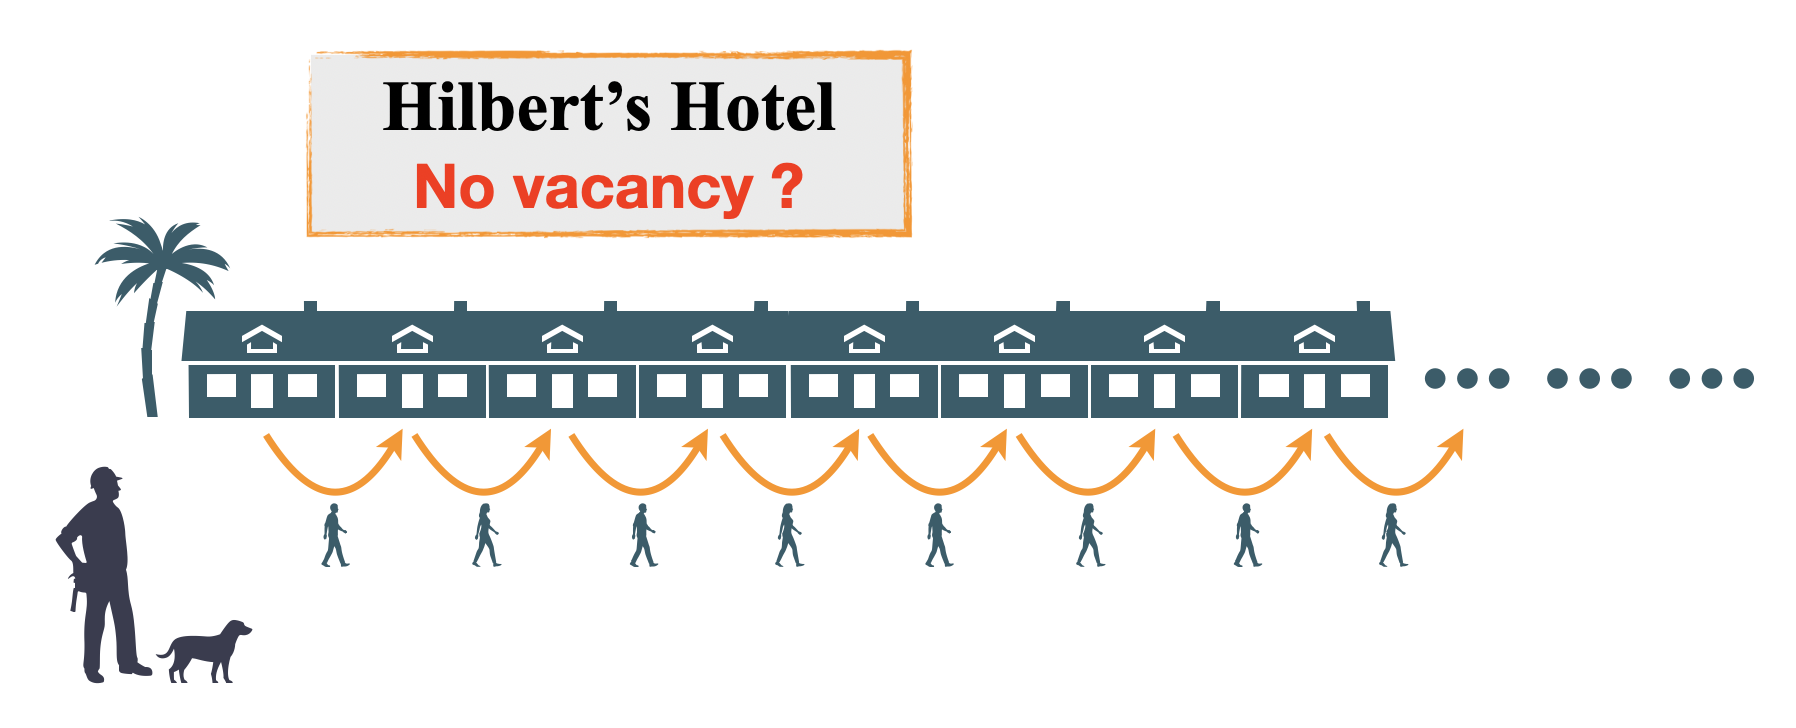 Fig. 4. Hilbert's Hotel with infinitely many rooms.